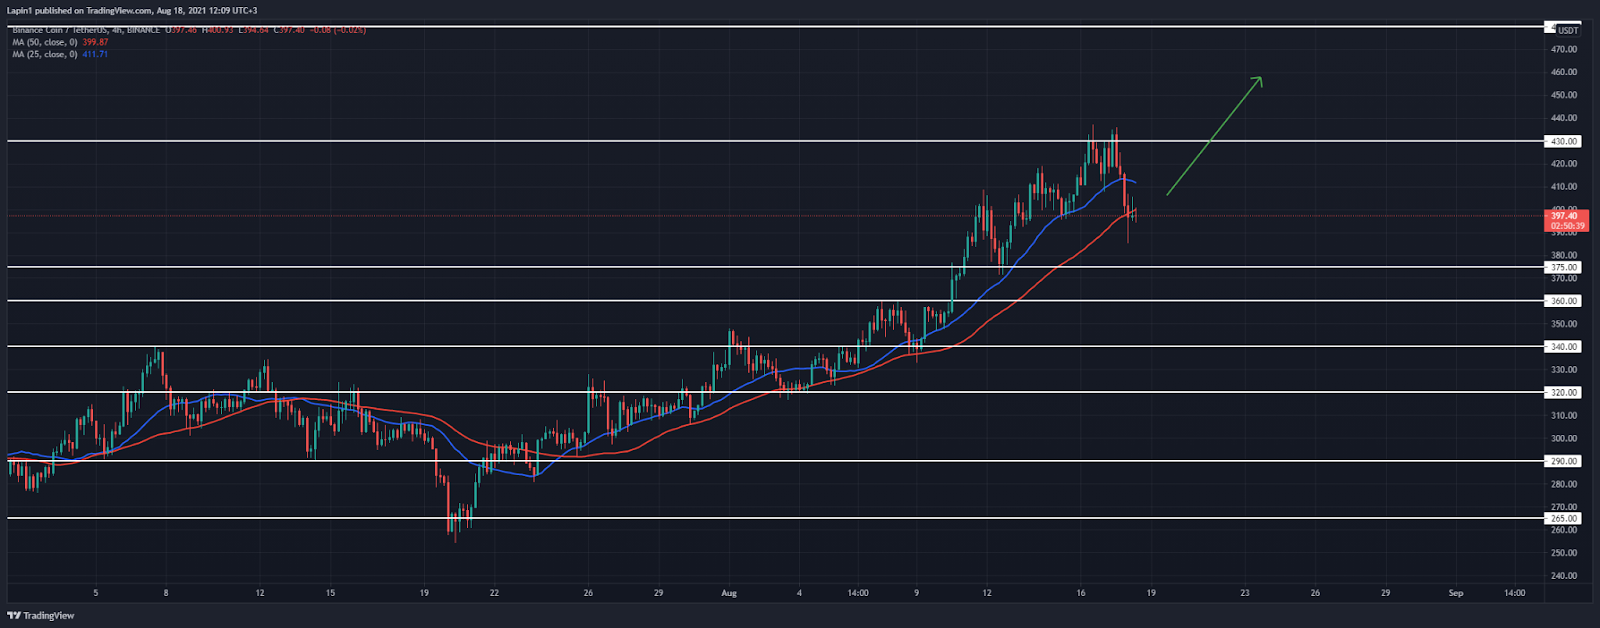 Binance Coin Price Analysis: BNB retraces below $400, rejects further downside